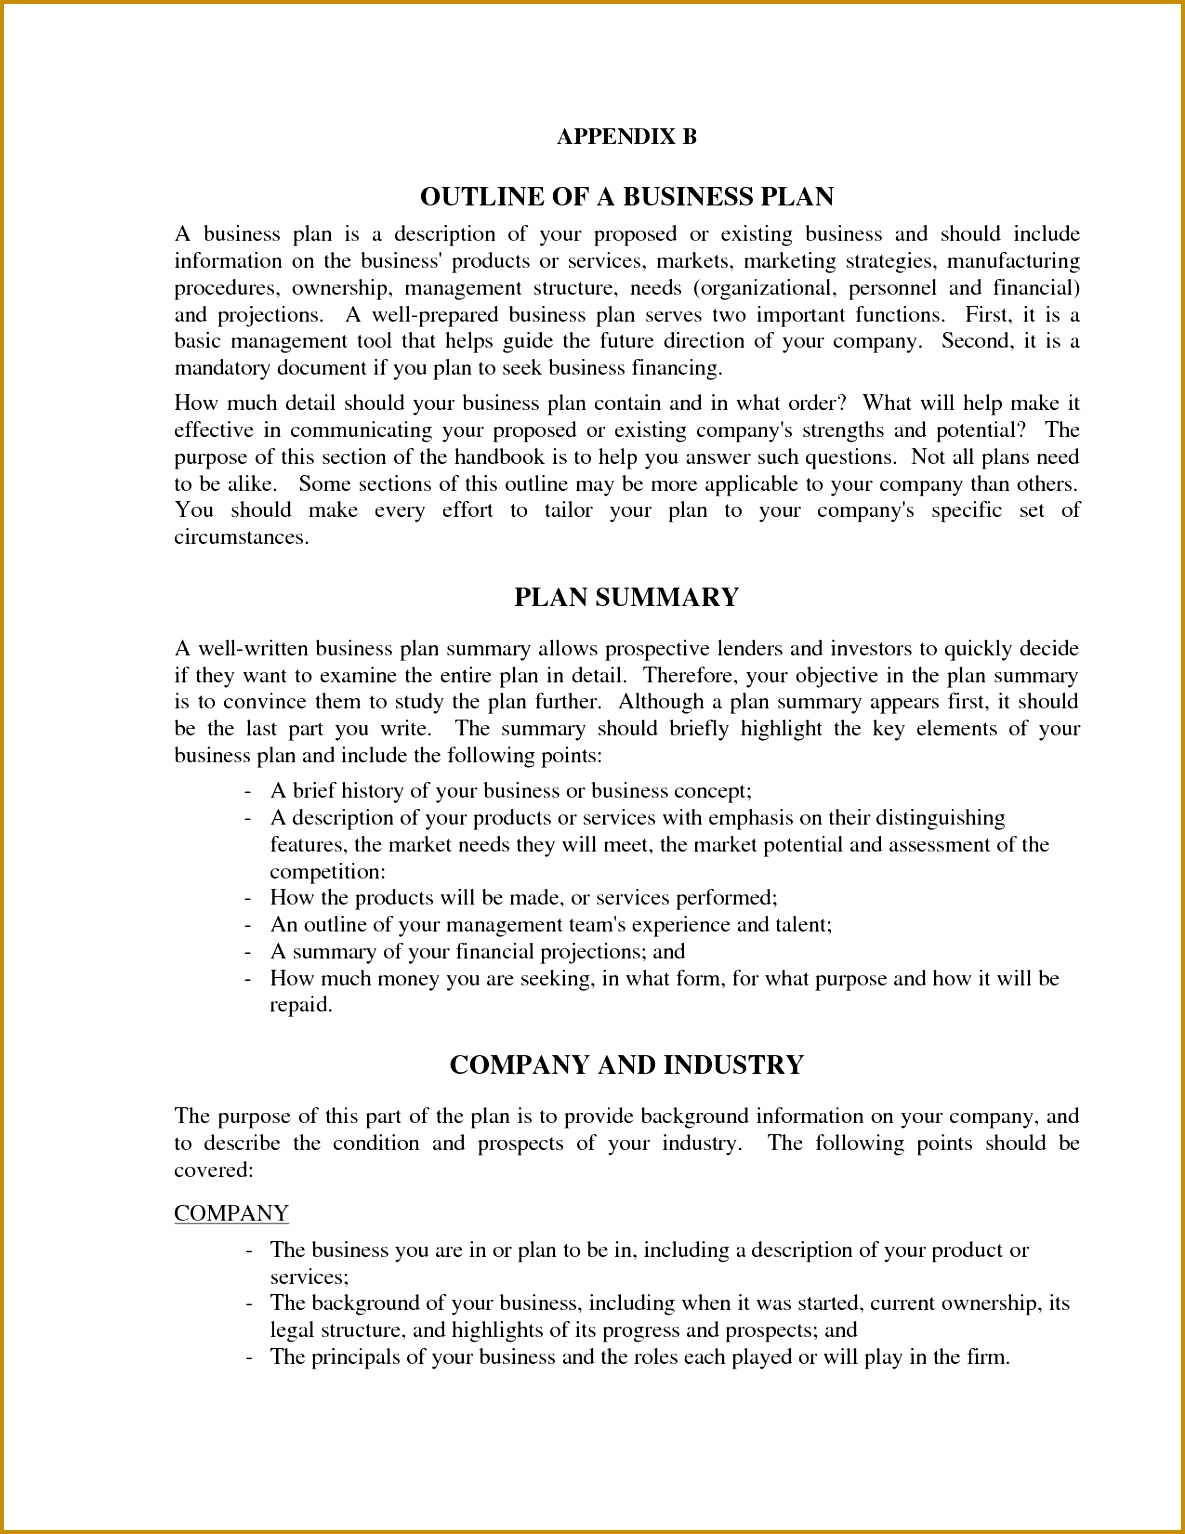 Business Plan For Sales Rep Sample Template Curriculum Vitae Plans Rrmaceutical Reps Outside Independent Free Pdf 15341185